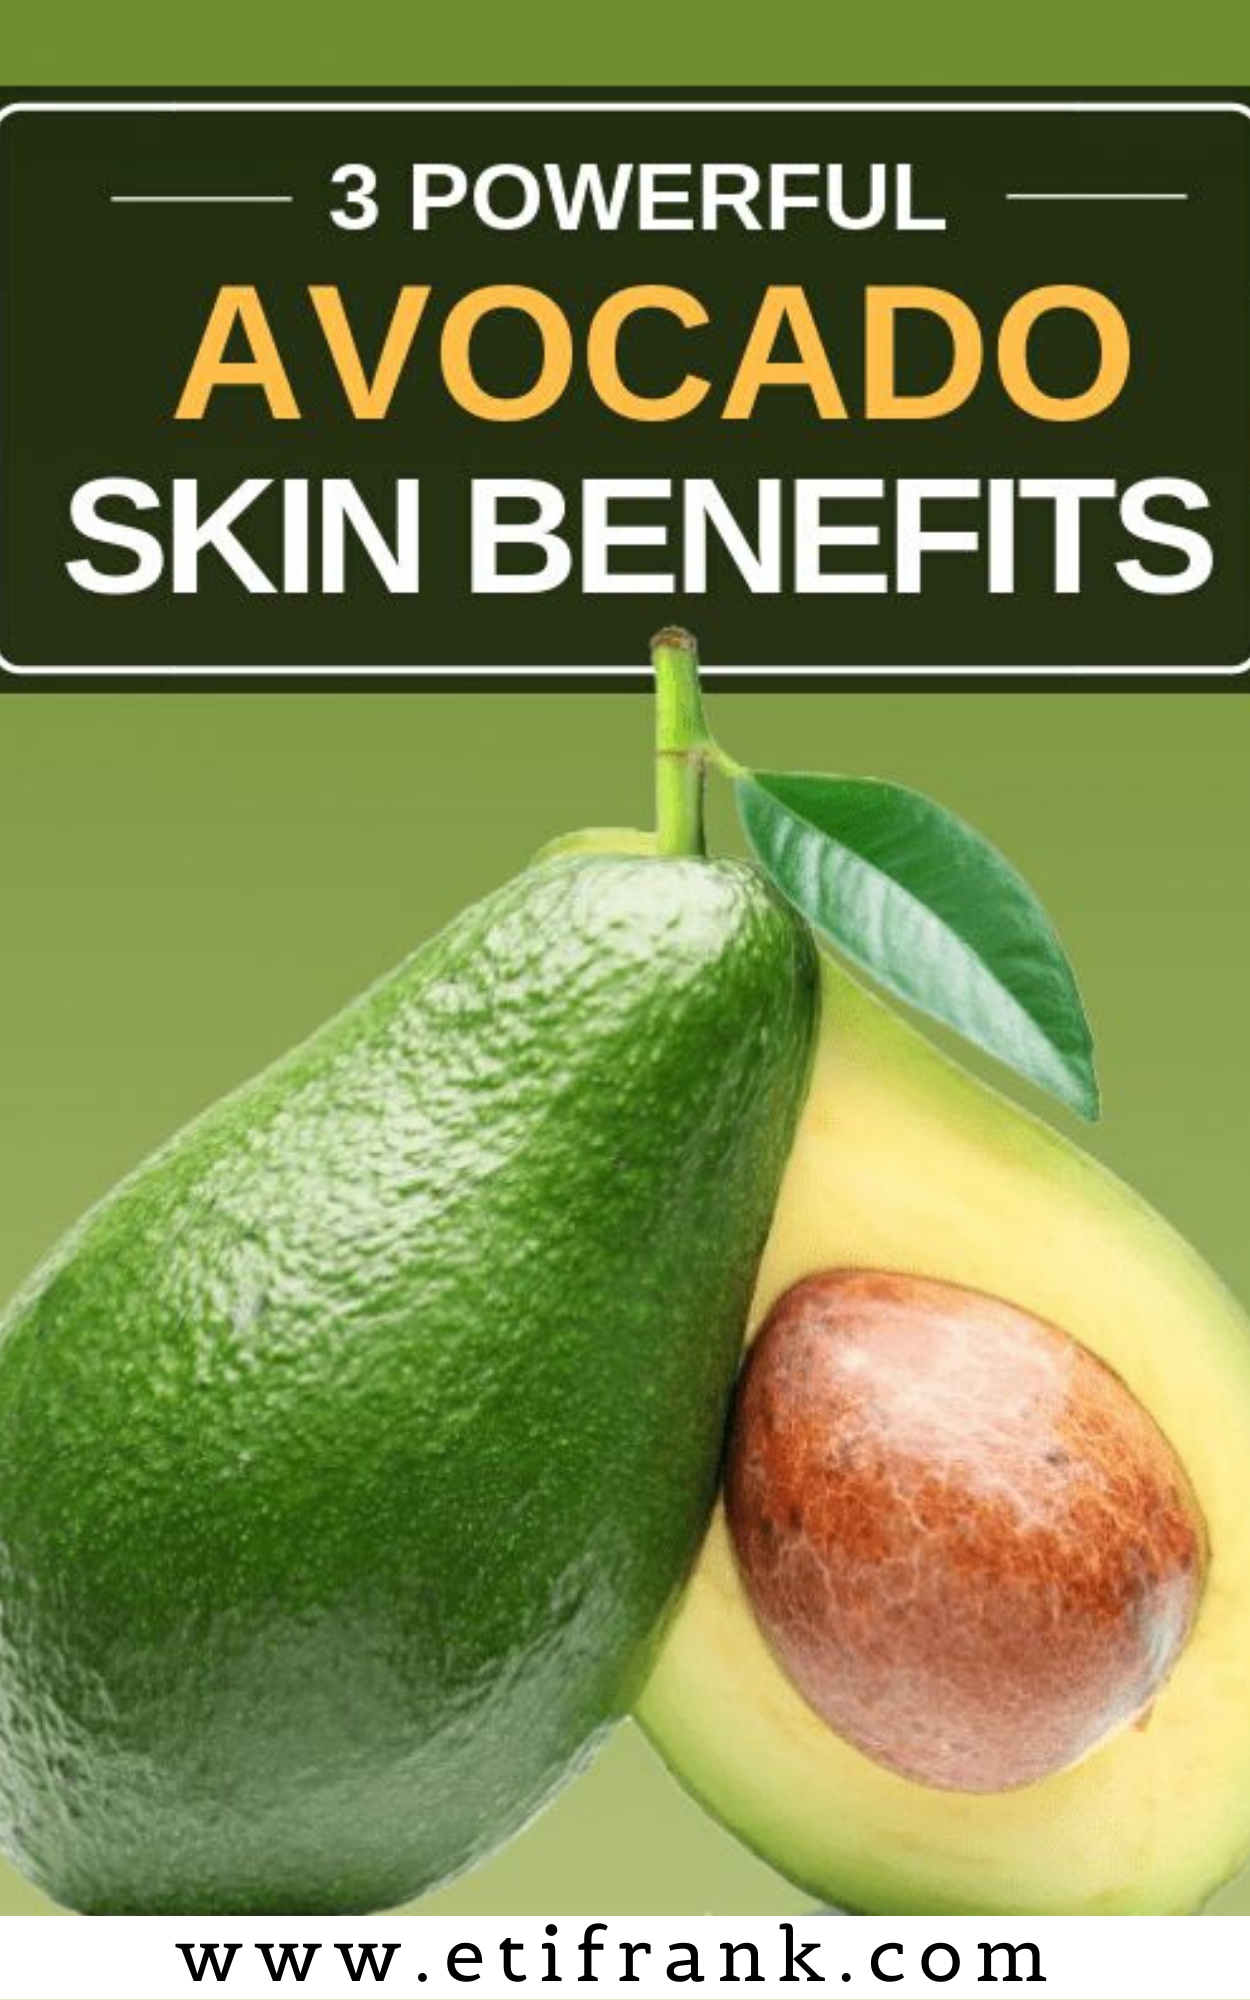 3 POWERFUL AVOCADO SKIN BENEFITS  The soft and pulpy fruit also contains antioxidants and can be us